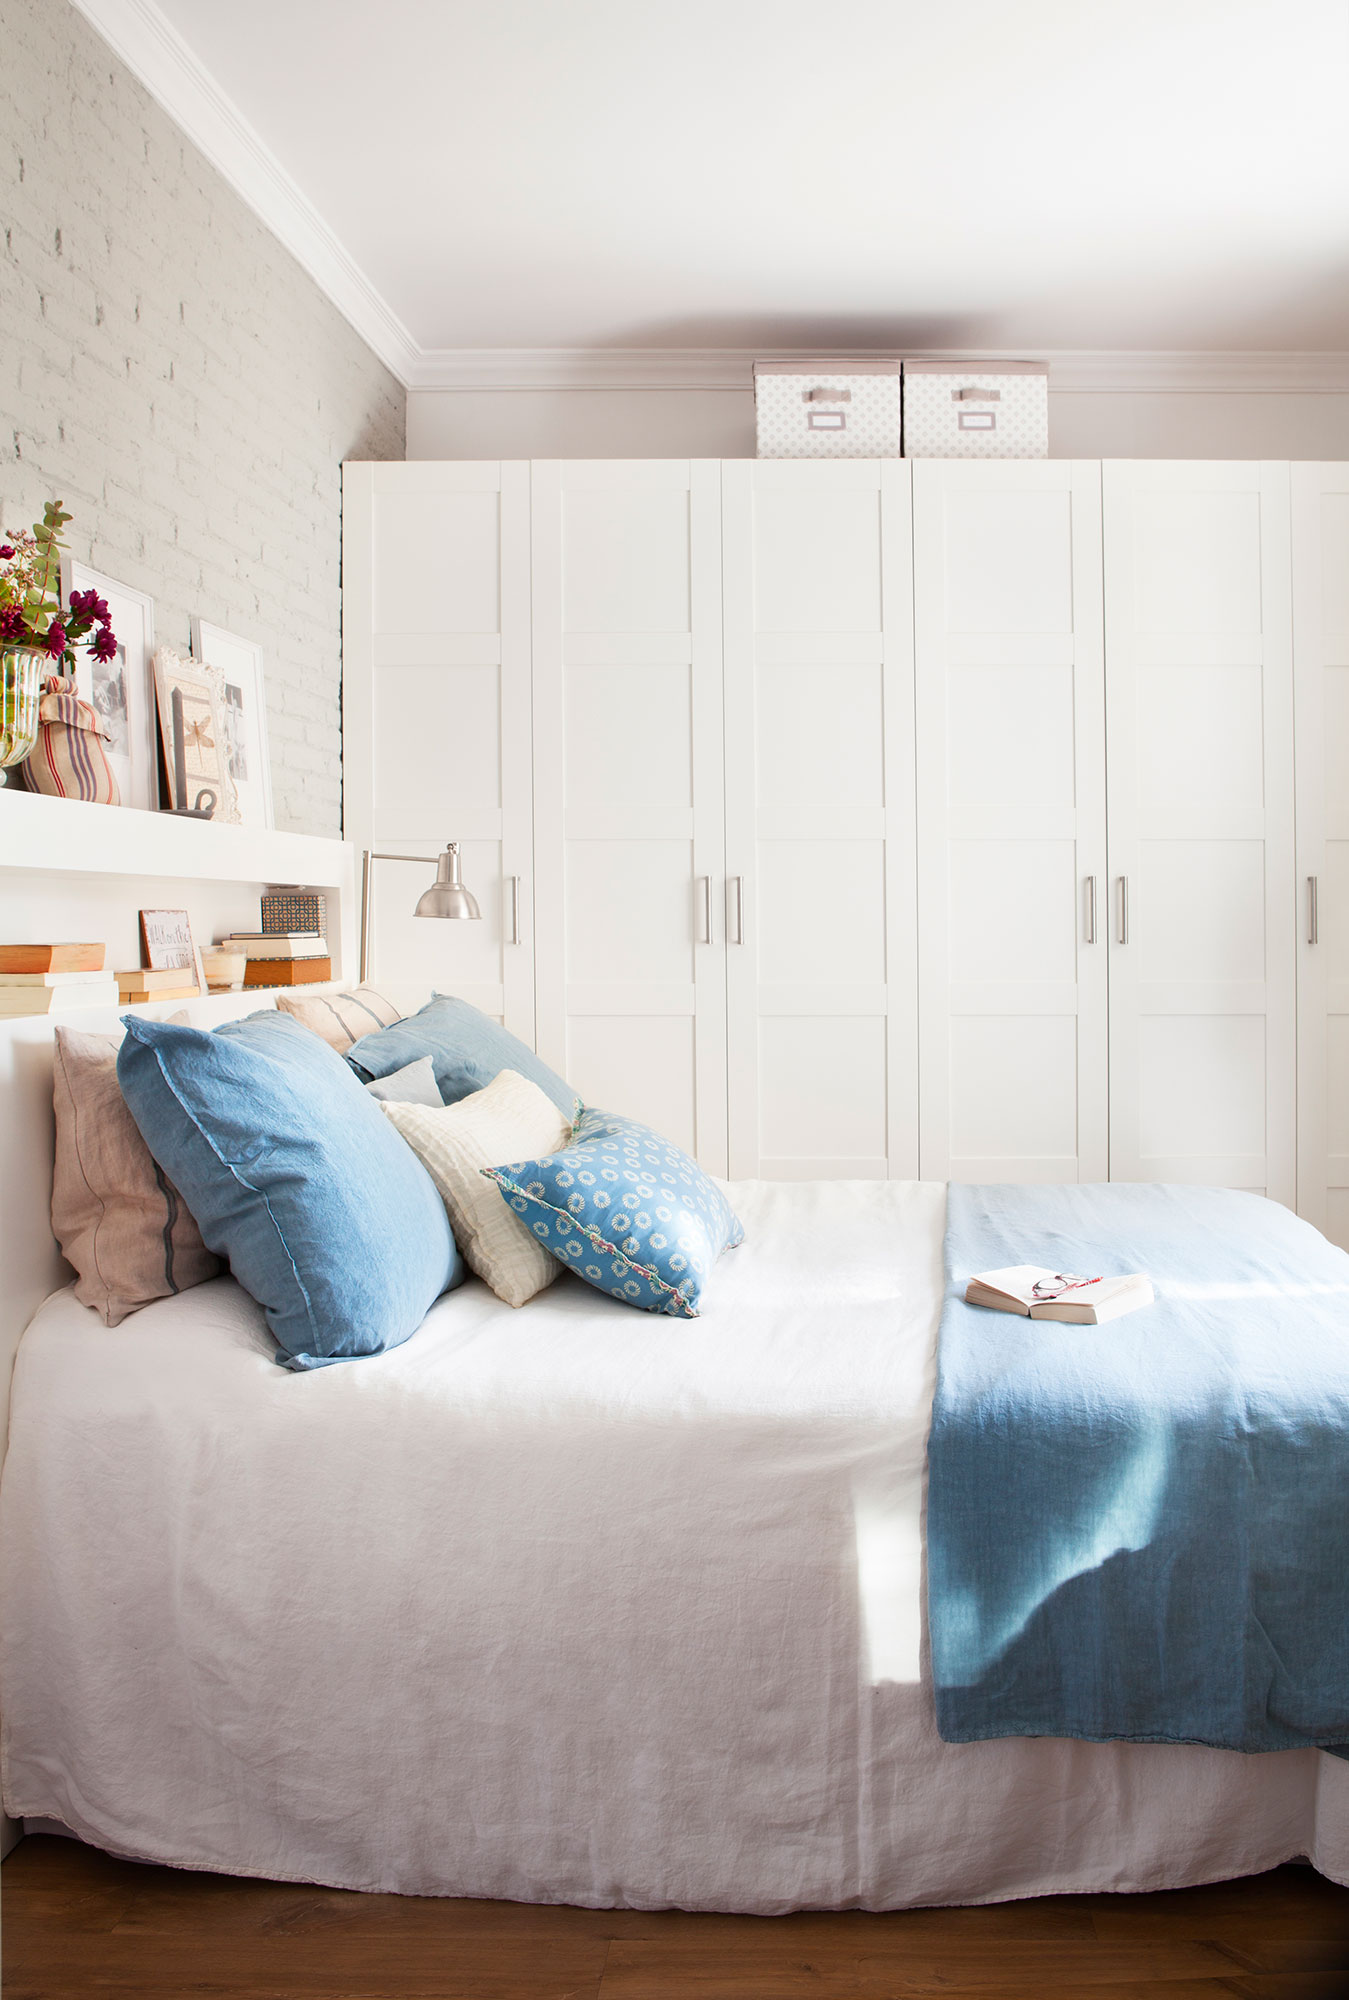 Compartir piso 10 ideas low cost para decorar tu dormitorio - Ideas para decorar dormitorios ...